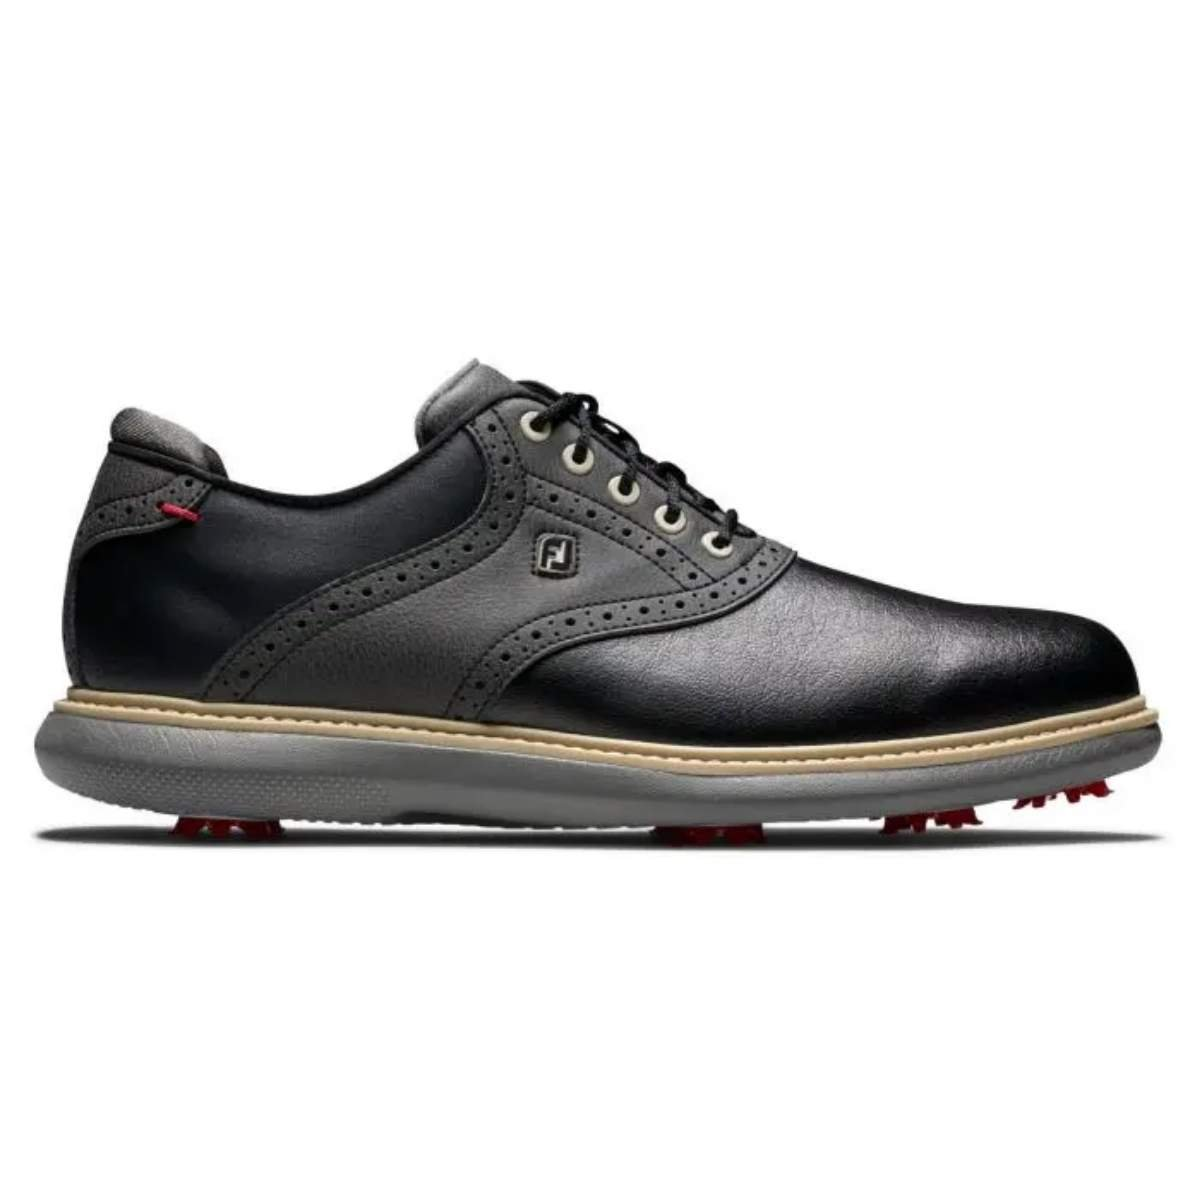 FootJoy Men's Traditions Golf Shoe -  Black 57904